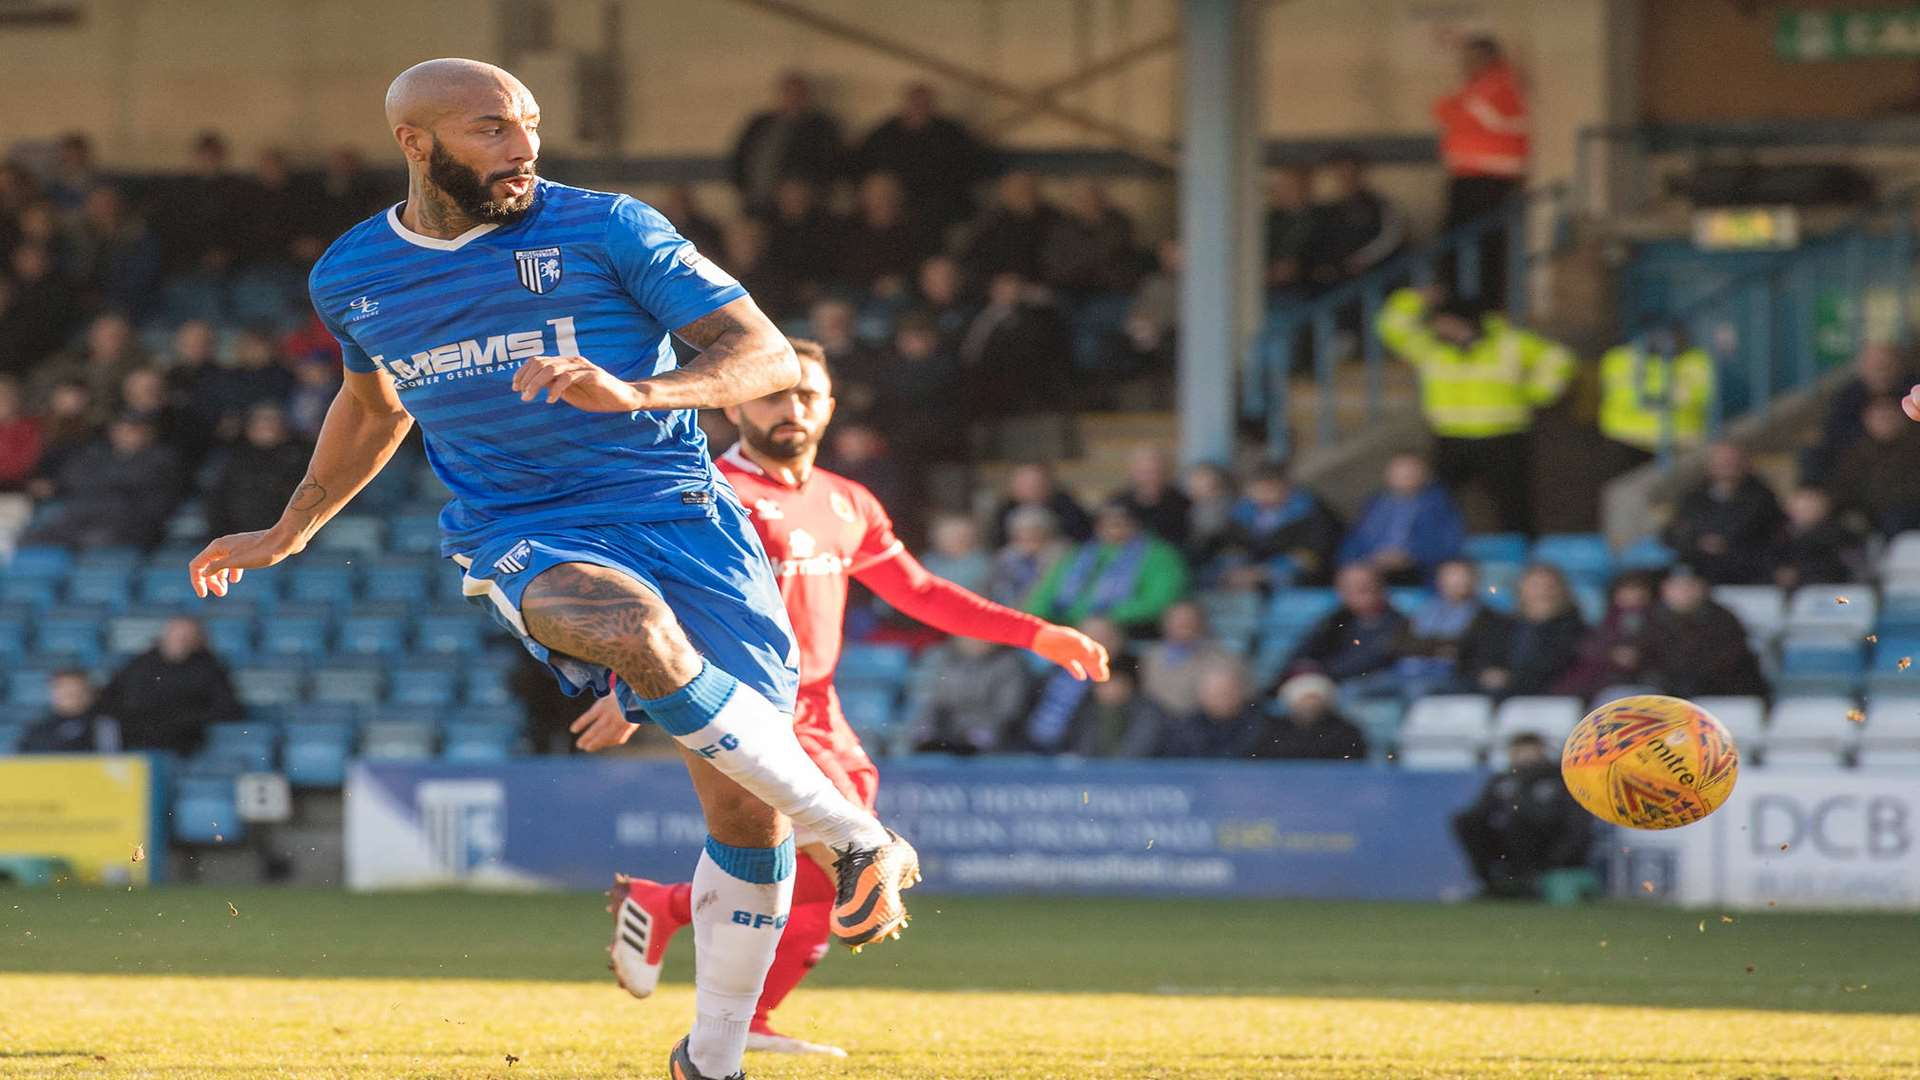 Josh Parker in action for the Gills Picture: Andy Payton